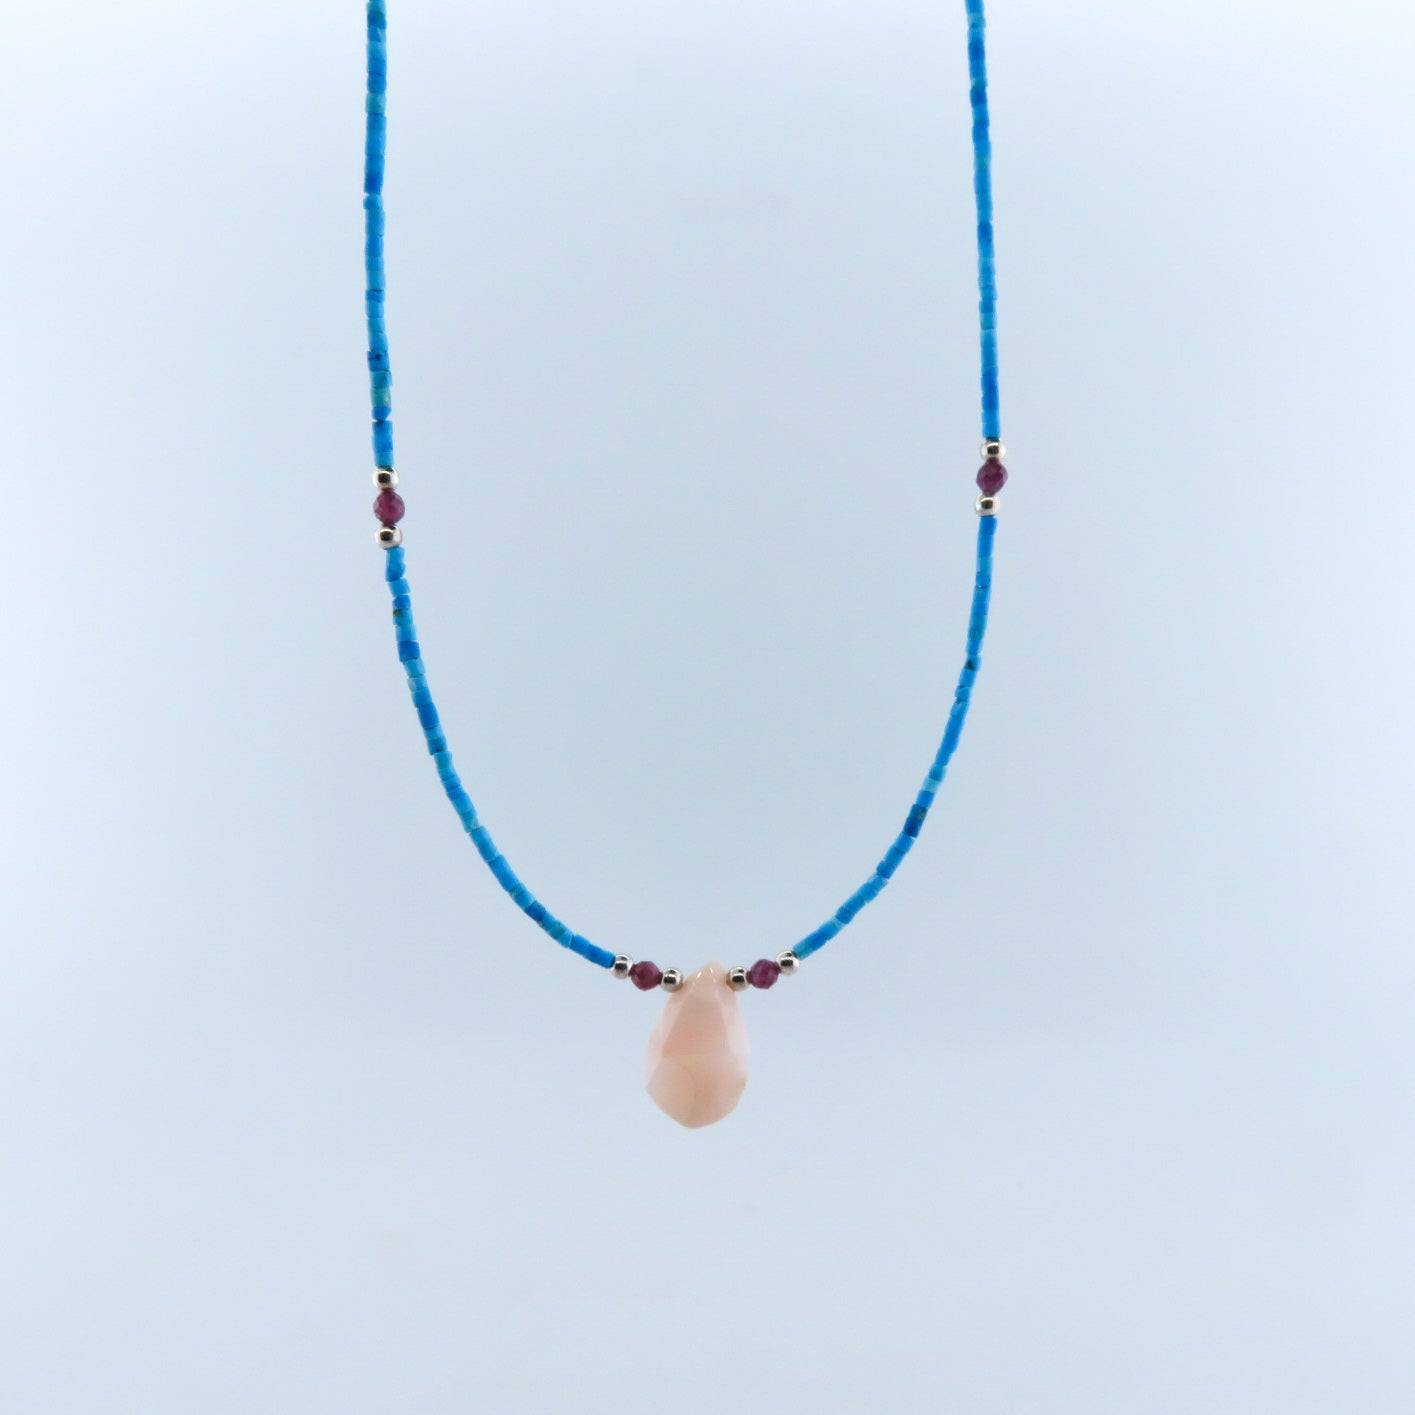 Turquoise Necklace with Agate, Garnet and Silver Beads